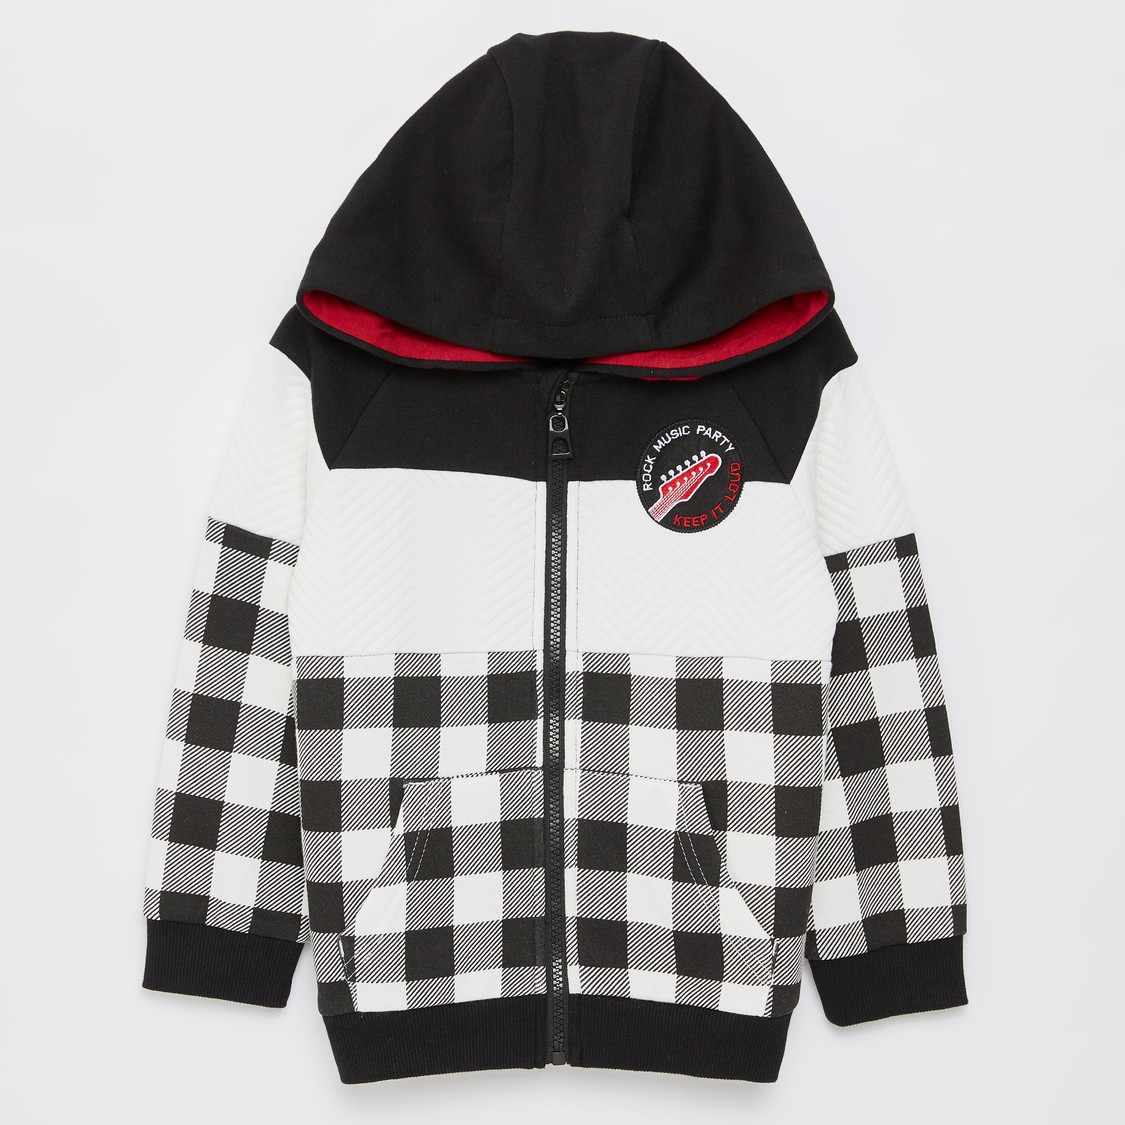 Checked Long Sleeves Jacket with Hooded Neck and Zip Closure